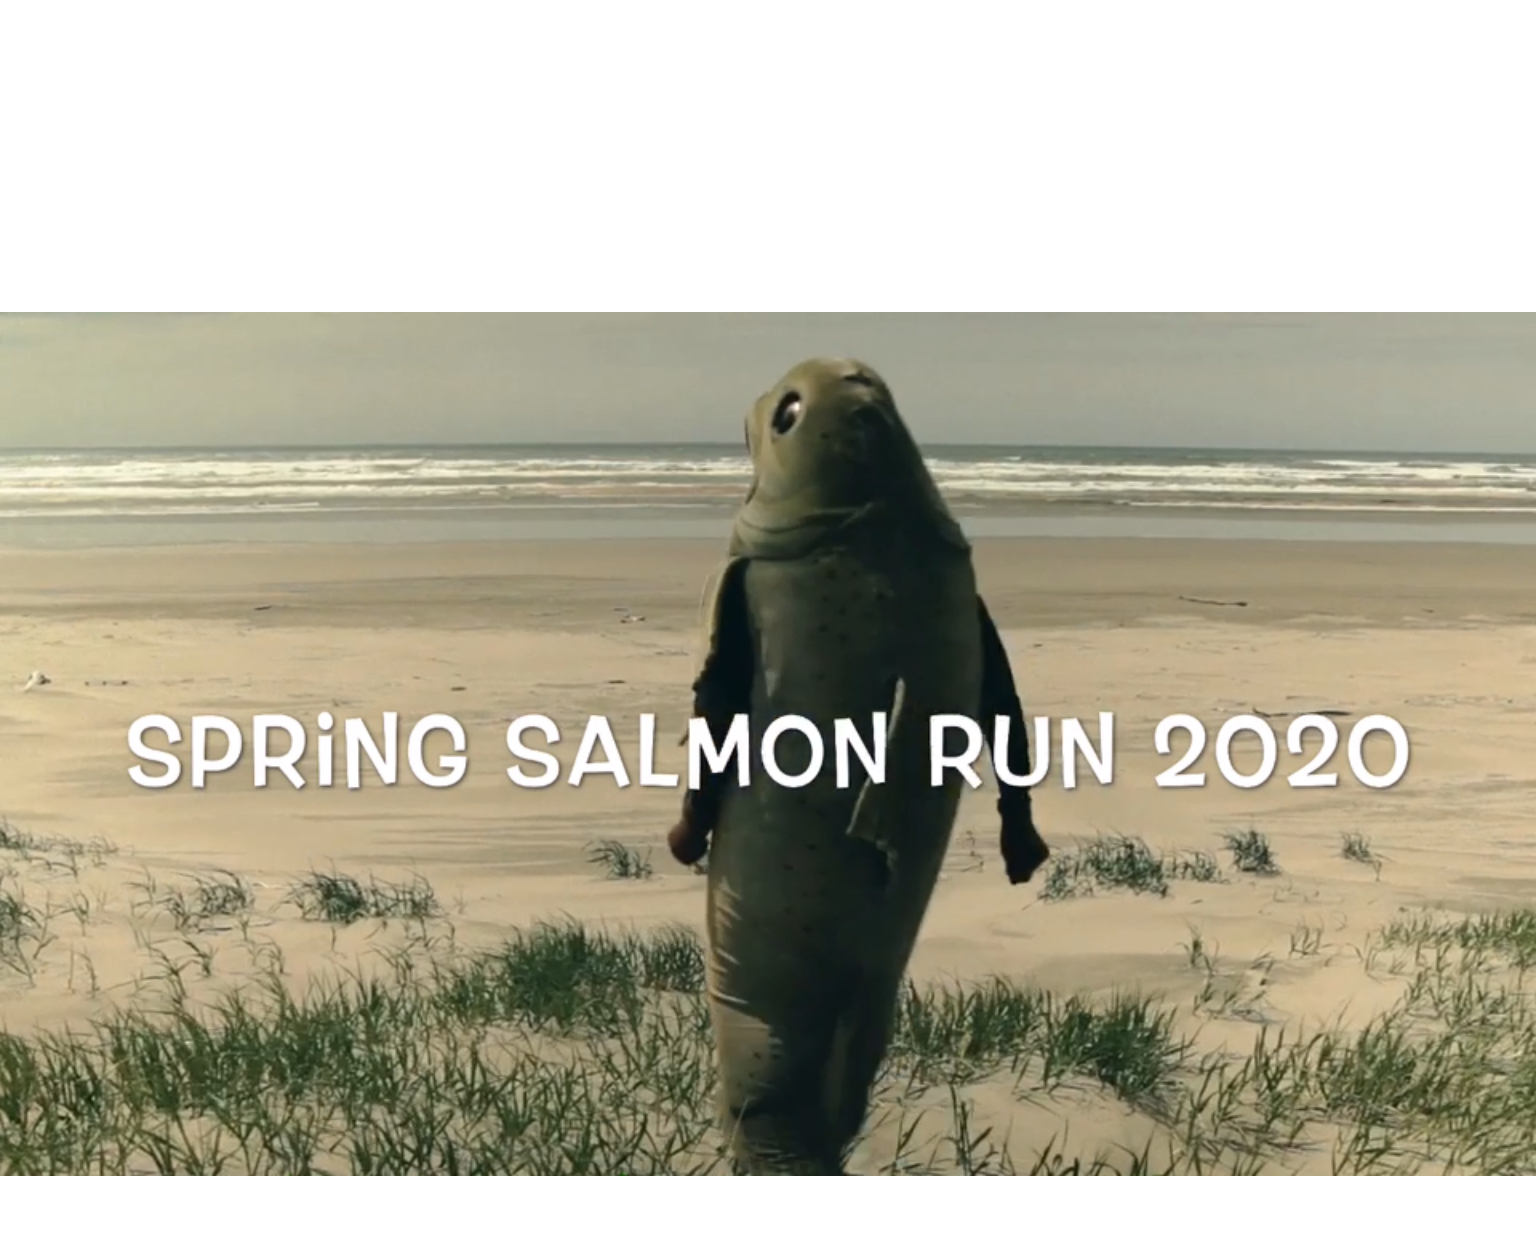 Person in Salmon costume walking across dunes to beach with words Spring Salmon Run 2020 across the middle